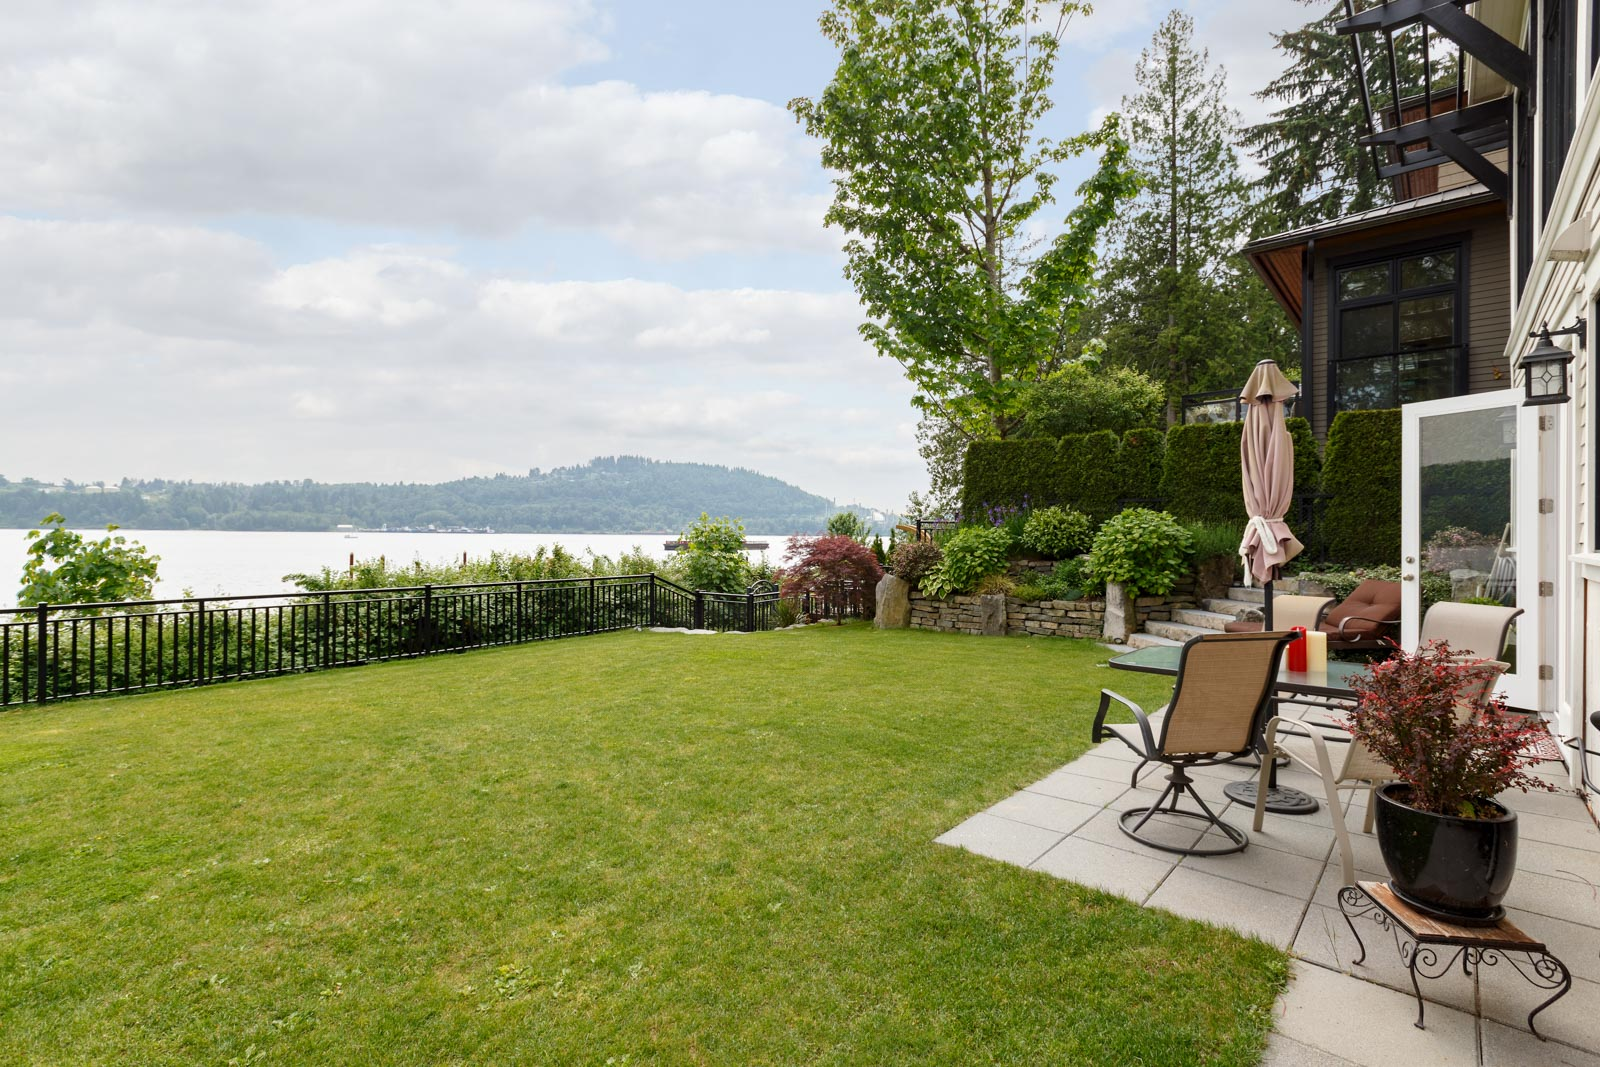 Yard outside North Vancouver luxury rental with view of the water.